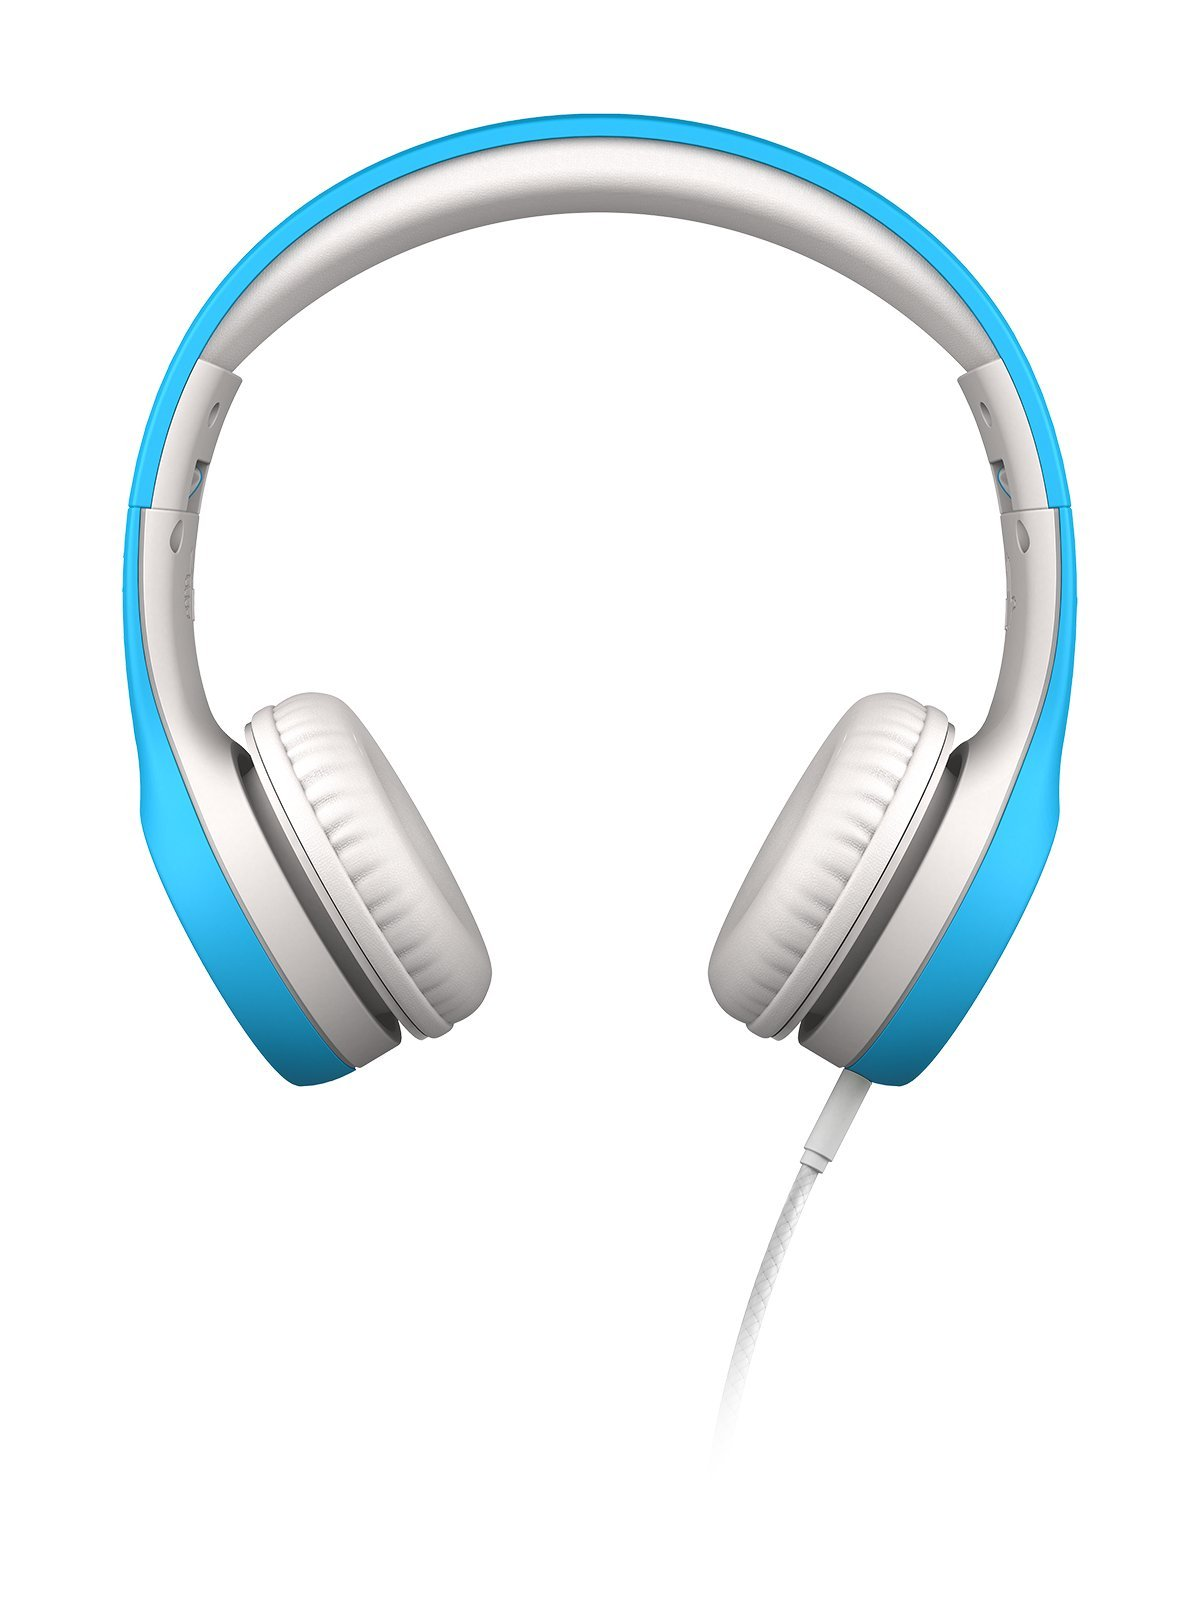 LilGadgets Kids Premium Volume Limited Wired Headphones with SharePort (Children, Toddlers) - Blue by LilGadgets